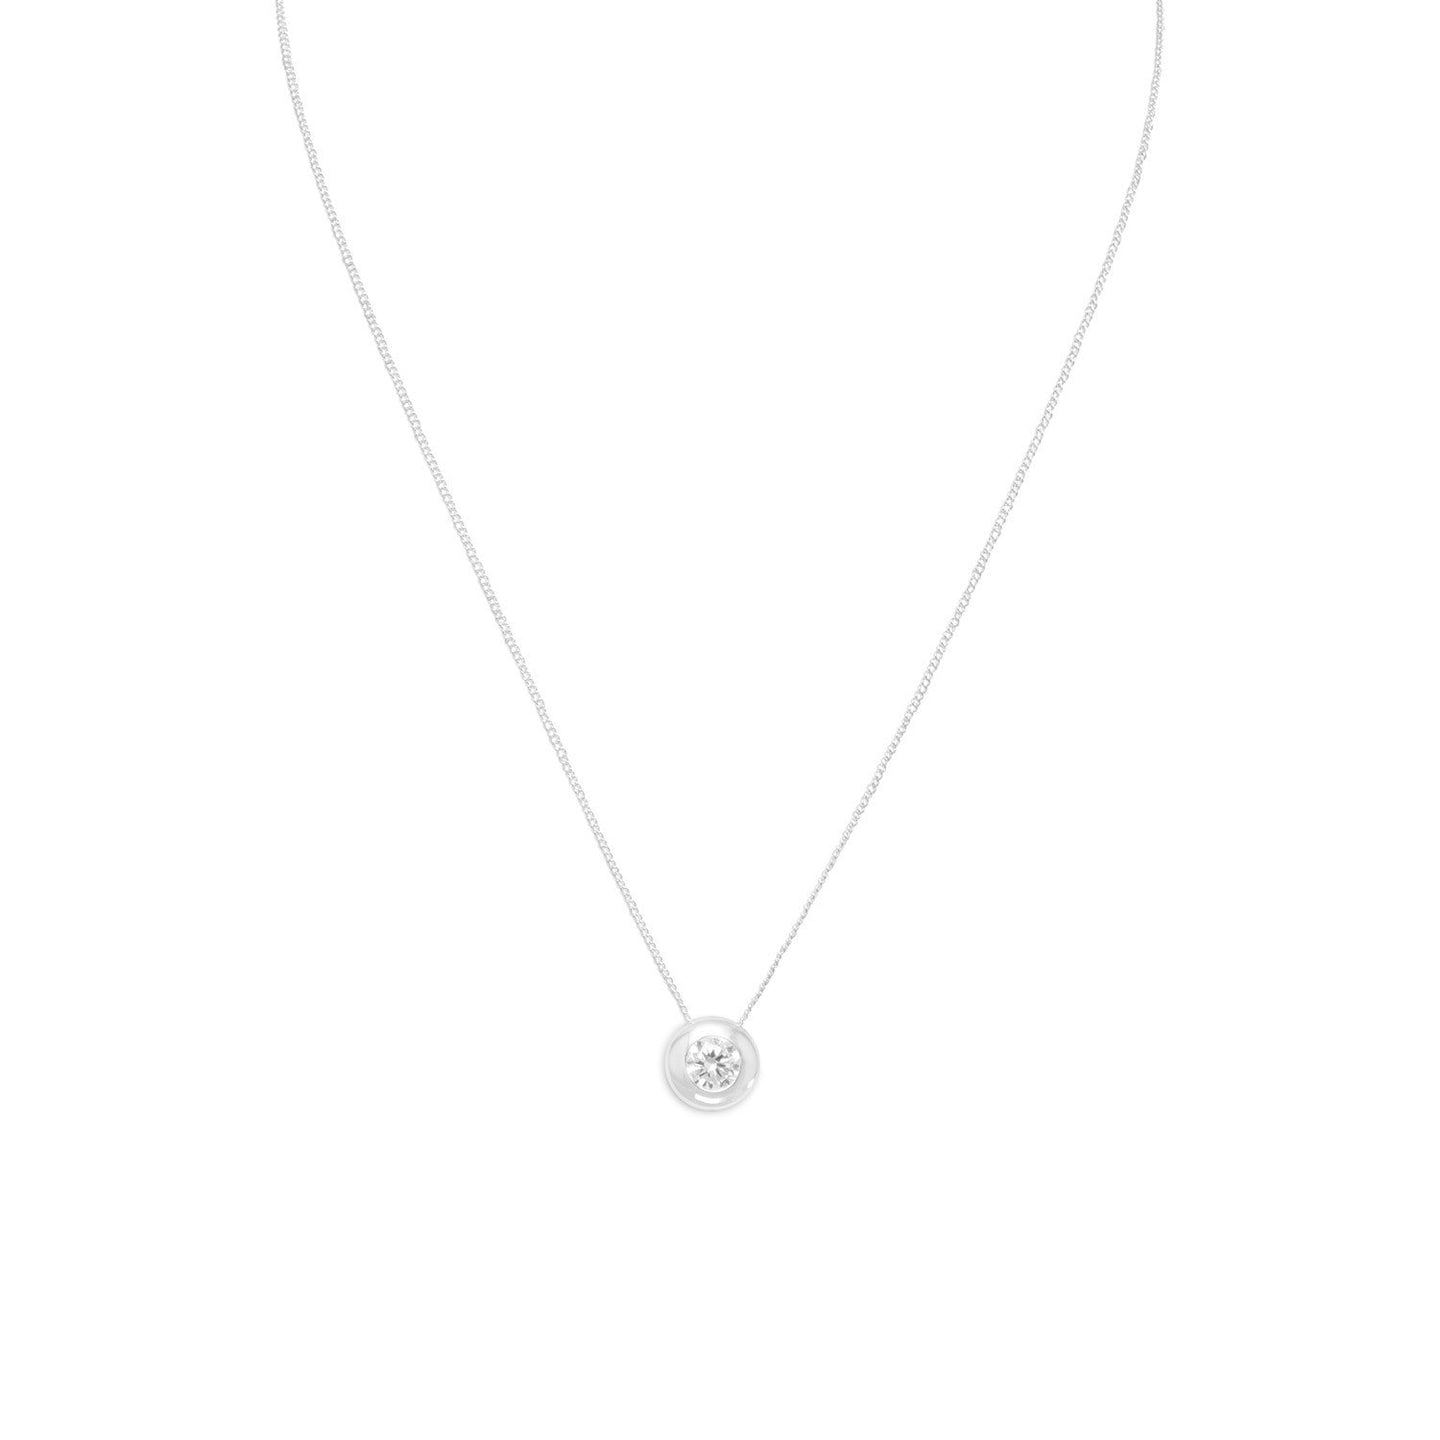 Necklace with Bezel Set CZ - the-southern-magnolia-too